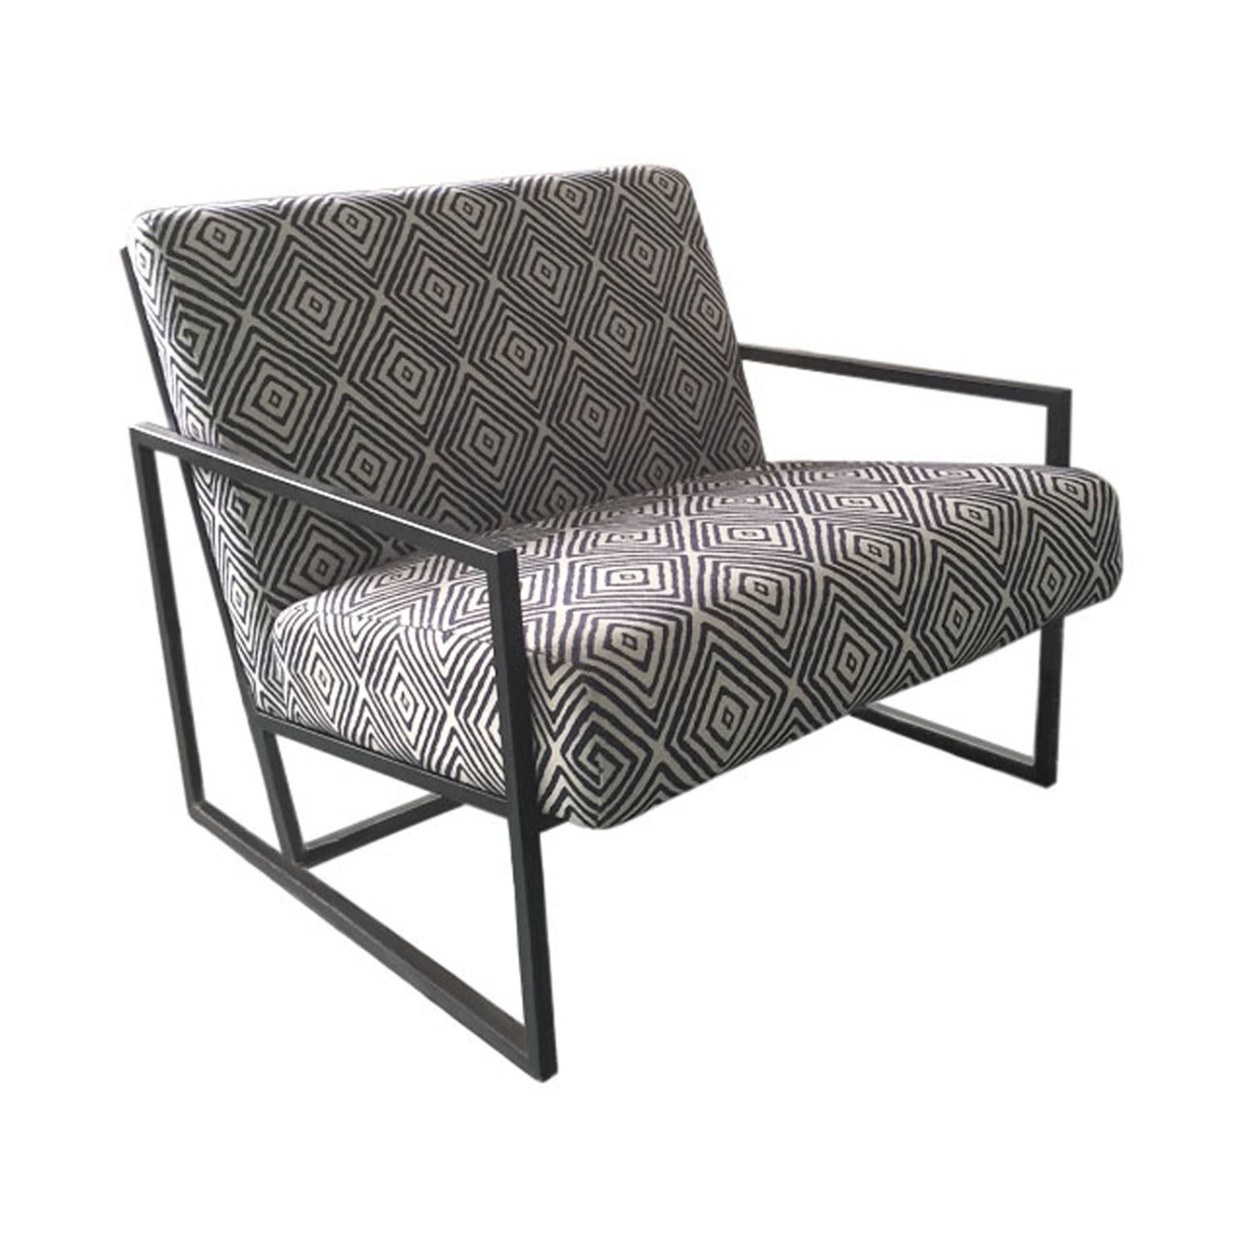 Black And White Accent Chair Us 1196 71 Diamond Luxe Accent Chair In Black White Geo Pattern Fabric In Living Room Chairs From Furniture On Aliexpress Alibaba Group